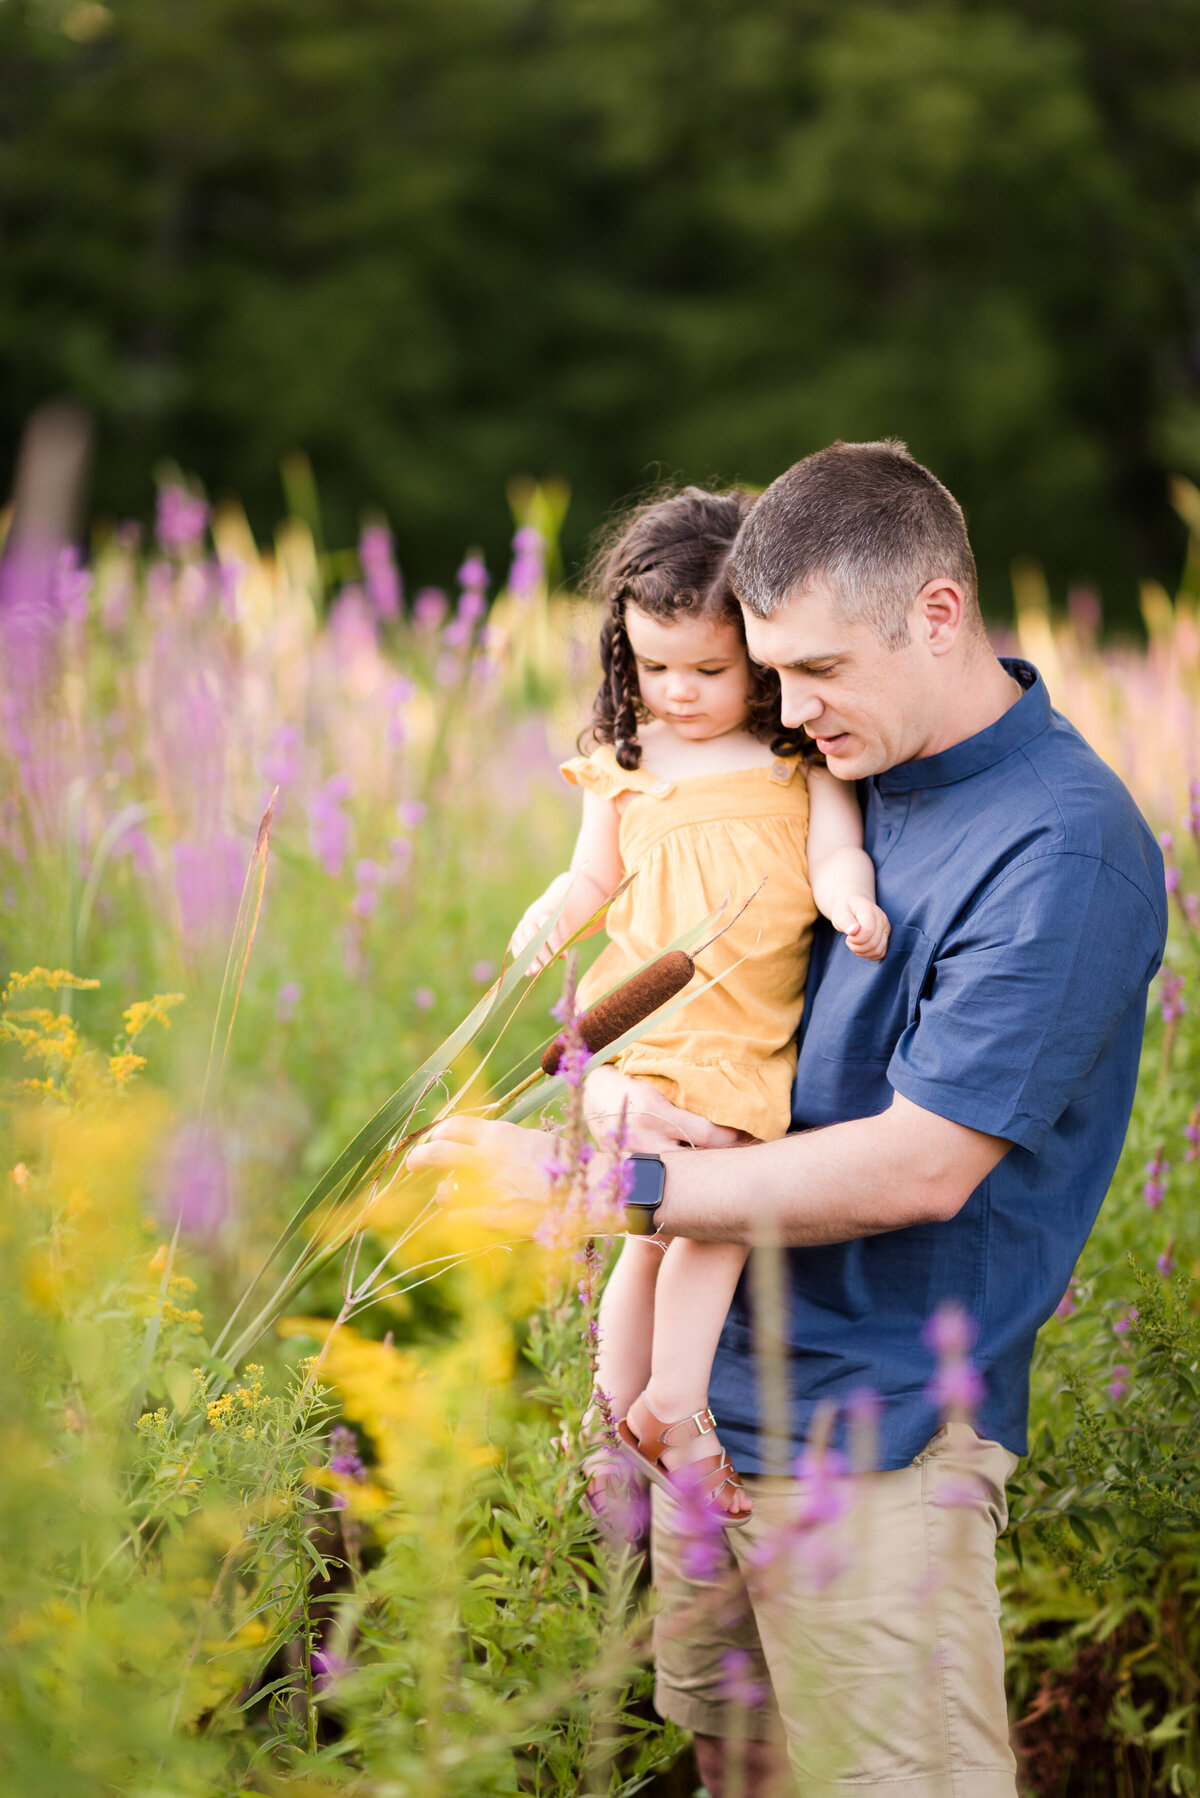 Boston-family-photographer-bella-wang-photography-Lifestyle-session-outdoor-wildflower-41